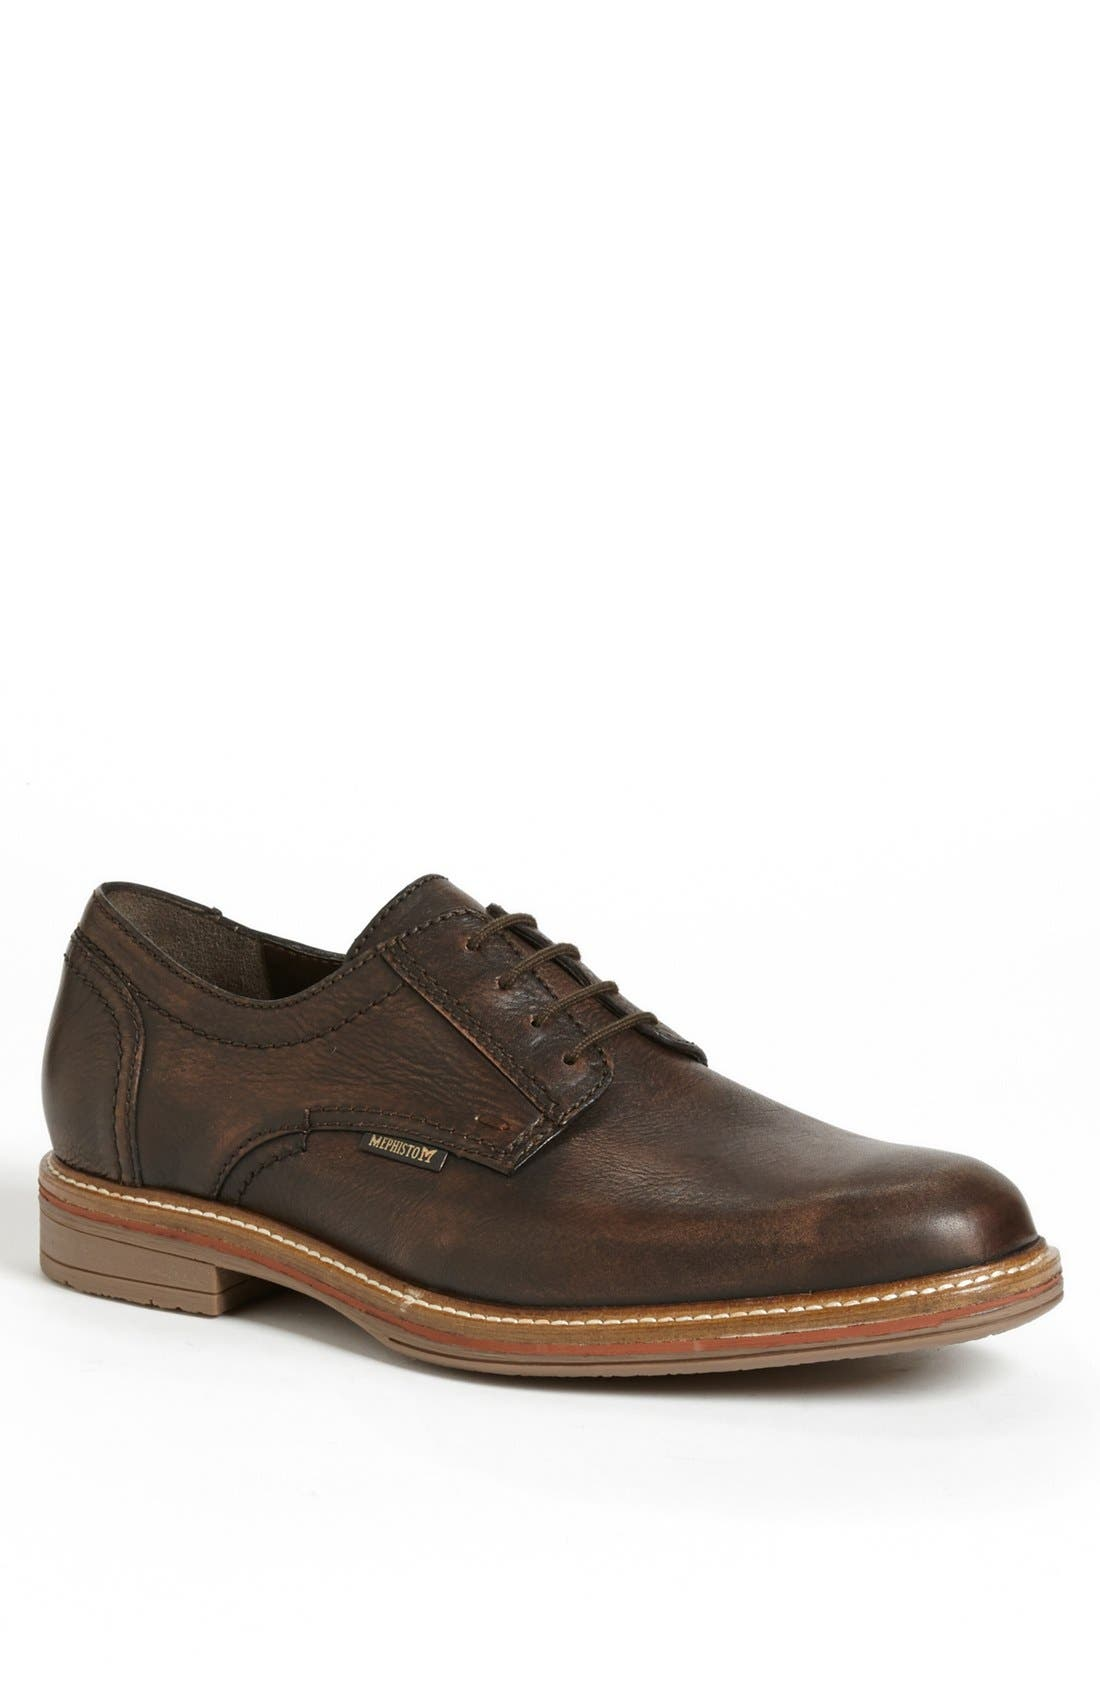 'Waino' Plain Toe Derby,                             Main thumbnail 1, color,                             BROWN DISTRESSED LEATHER